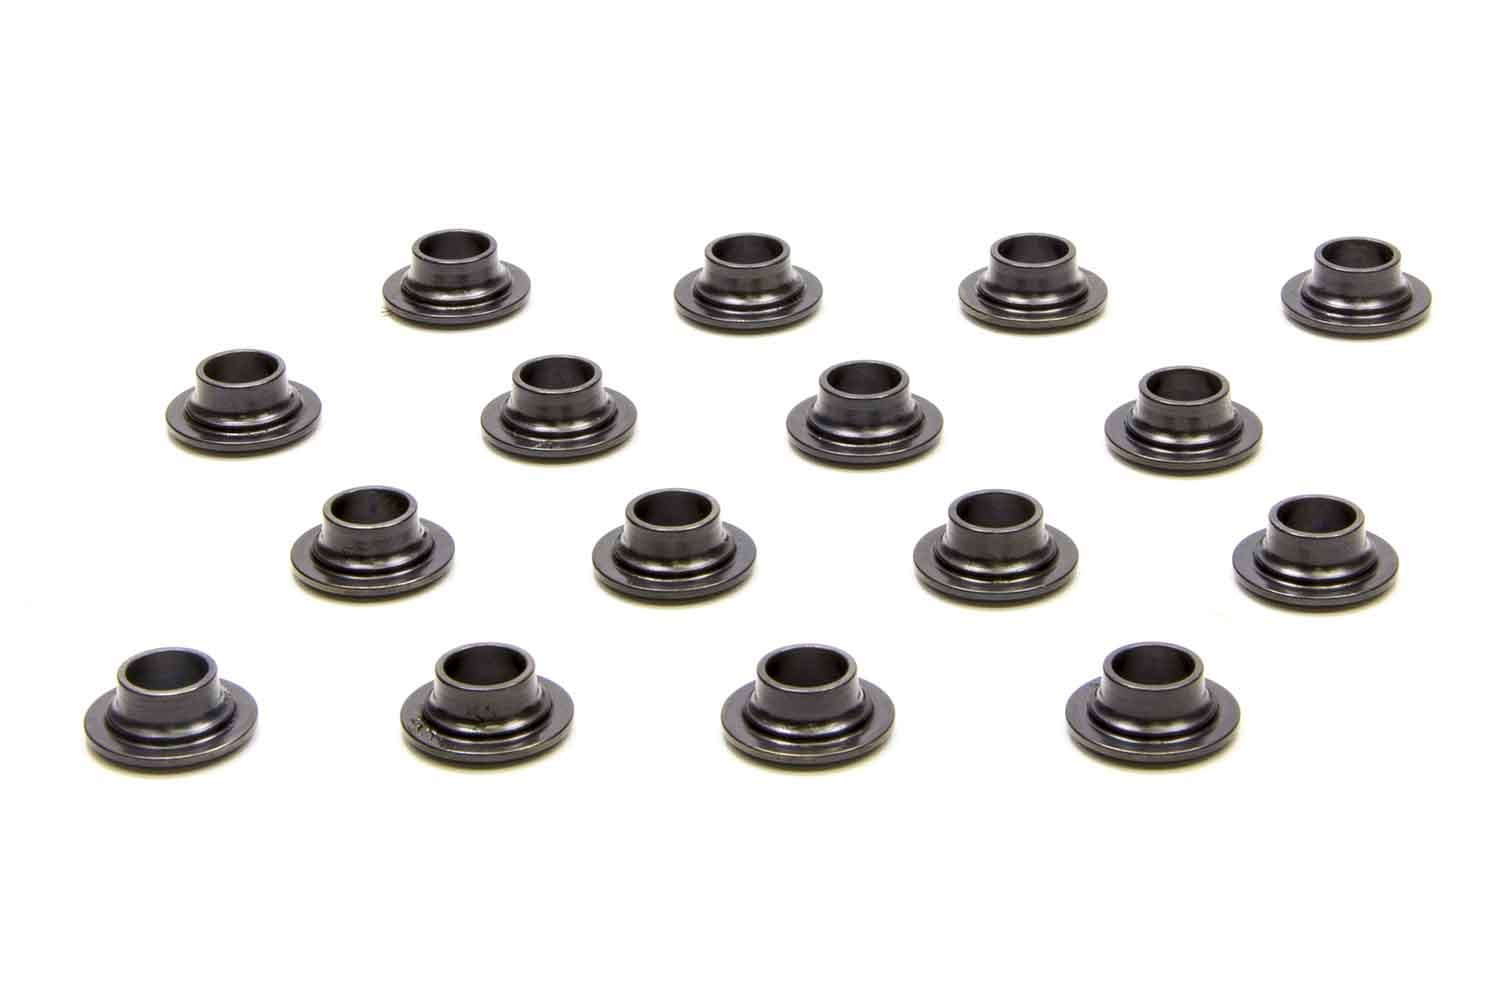 PAC Racing Springs PAC-R333 Valve Spring Retainer, 300 Series, 7 Degree, 0.640 in OD Step, Beehive Spring, Chromoly, Set of 16